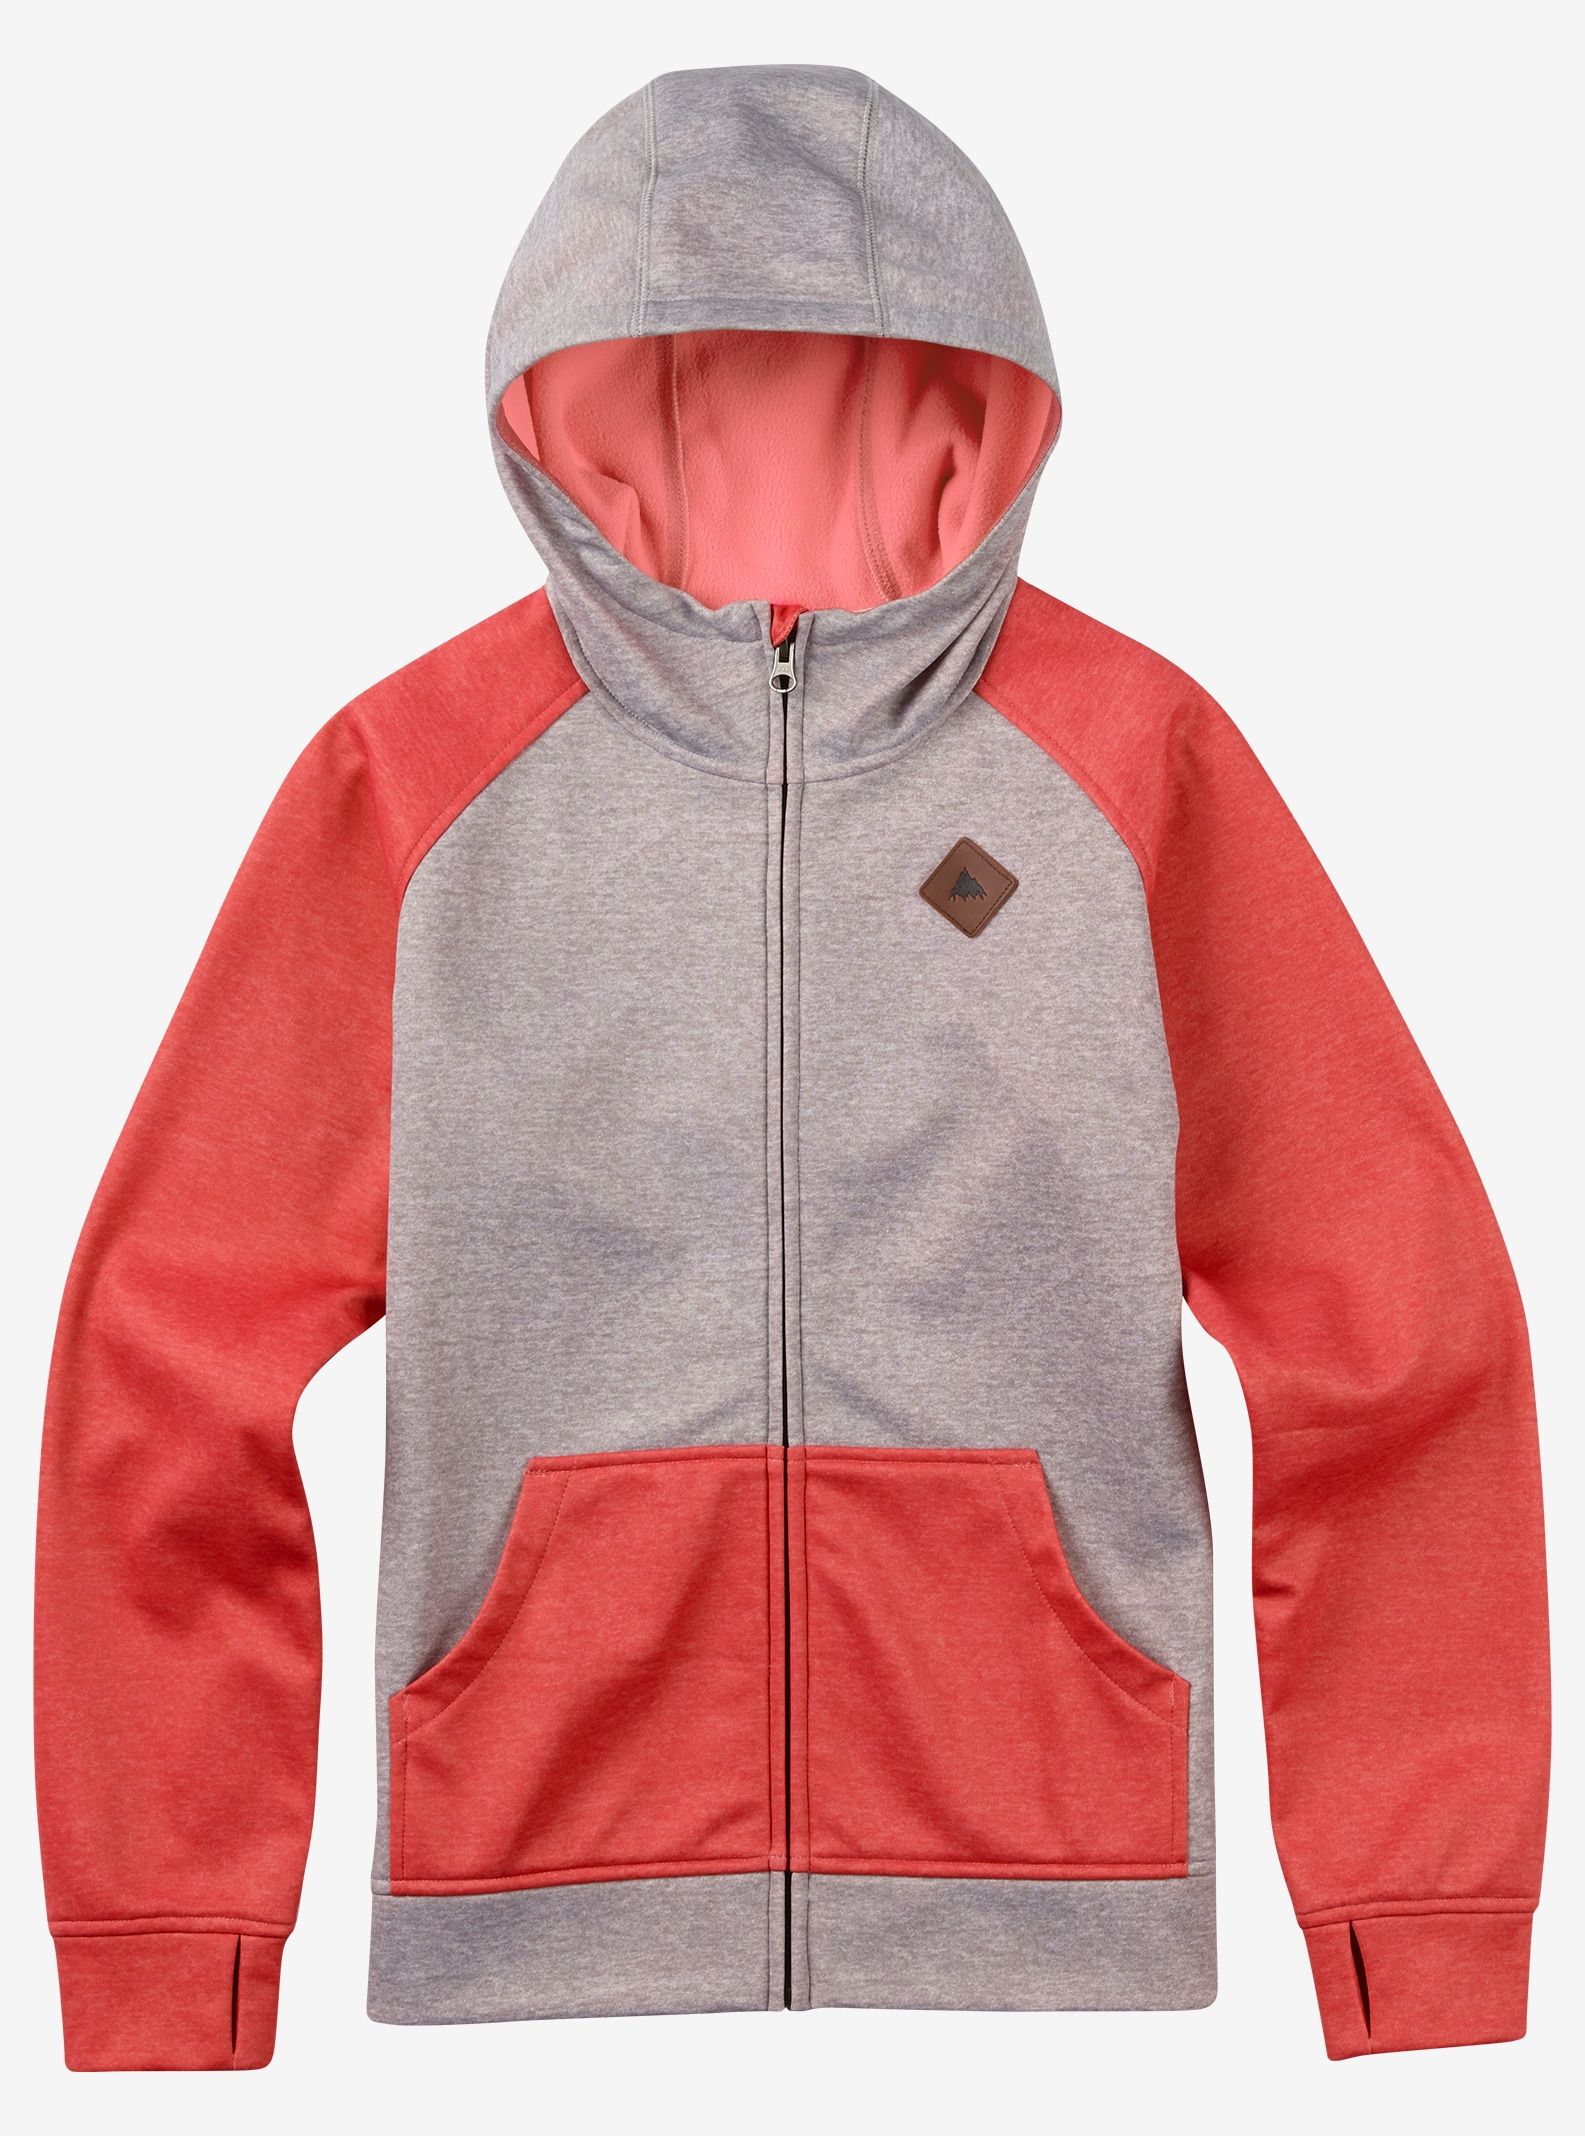 Burton Girls' Scoop Full-Zip Hoodie shown in Canvas Heather / Coral Heather